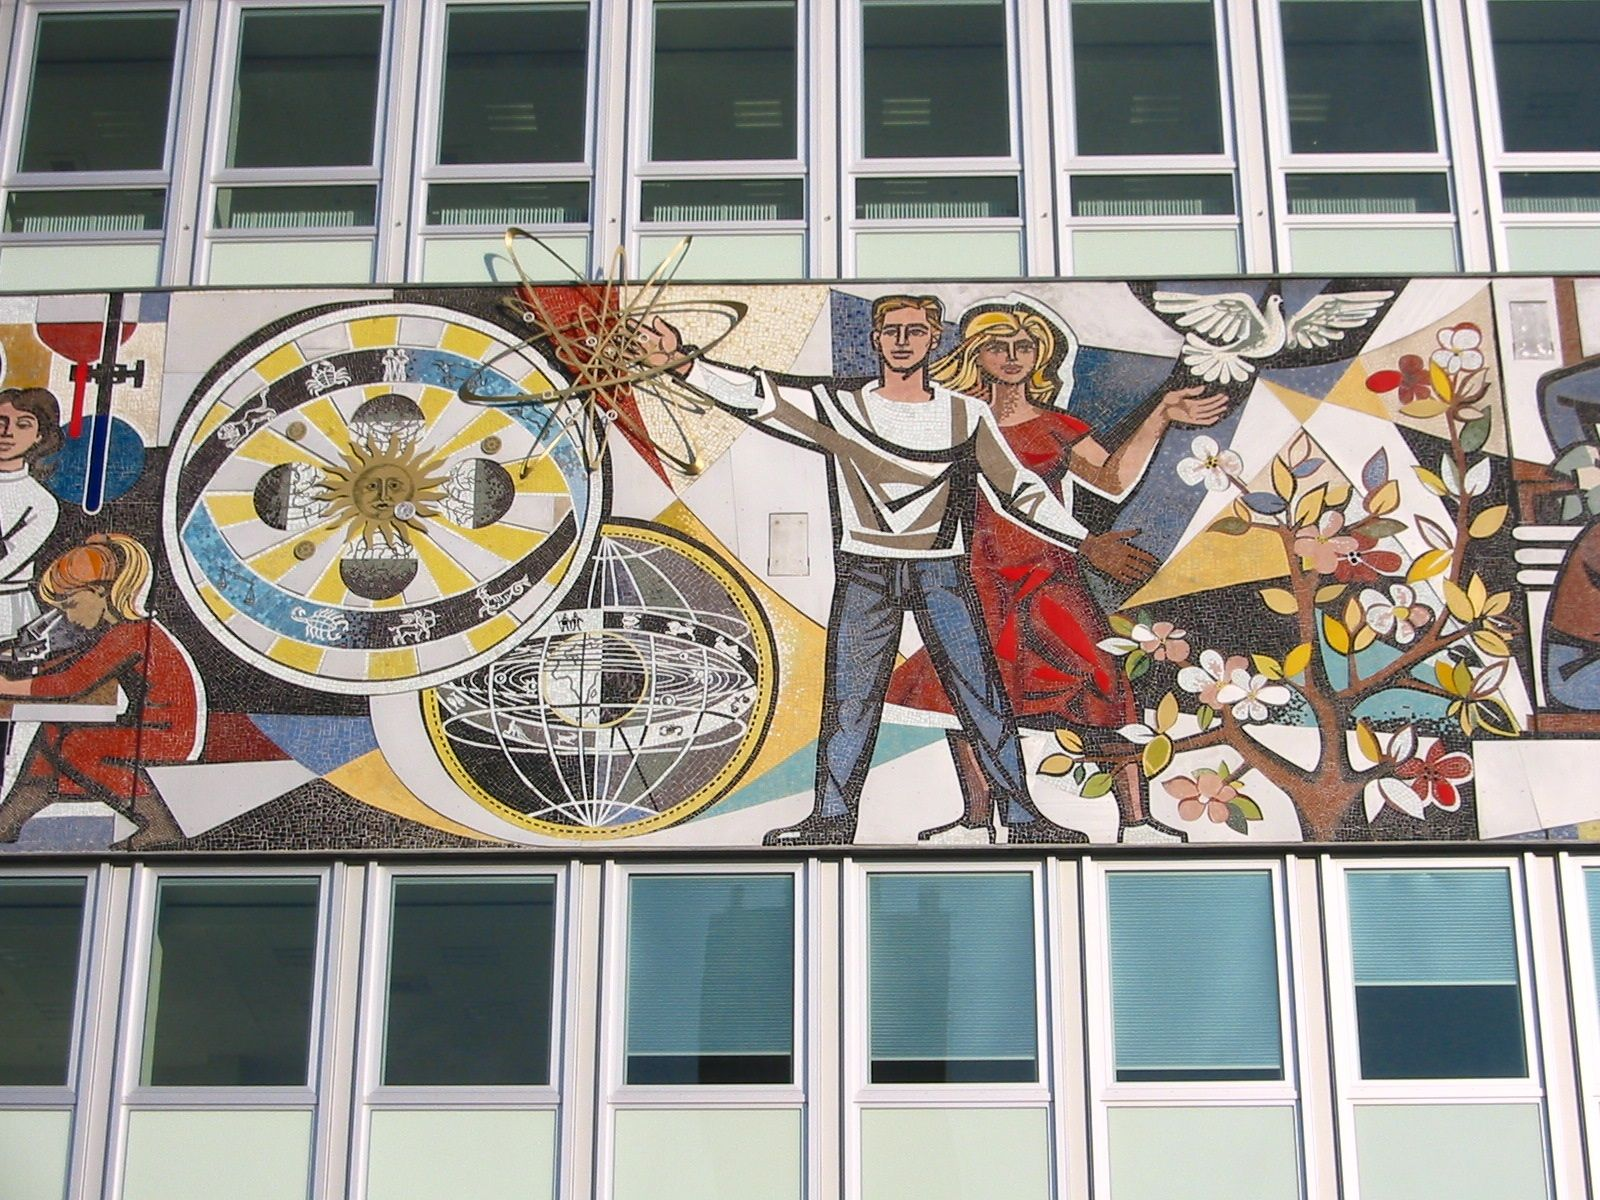 Ddr Mosaic Mural On The Haus Des Lehrers House Of The Teachers Located Near Alexanderplatz Berlin Germany Designed In The Style Of Mexican Mural Art By Ar Com Imagens